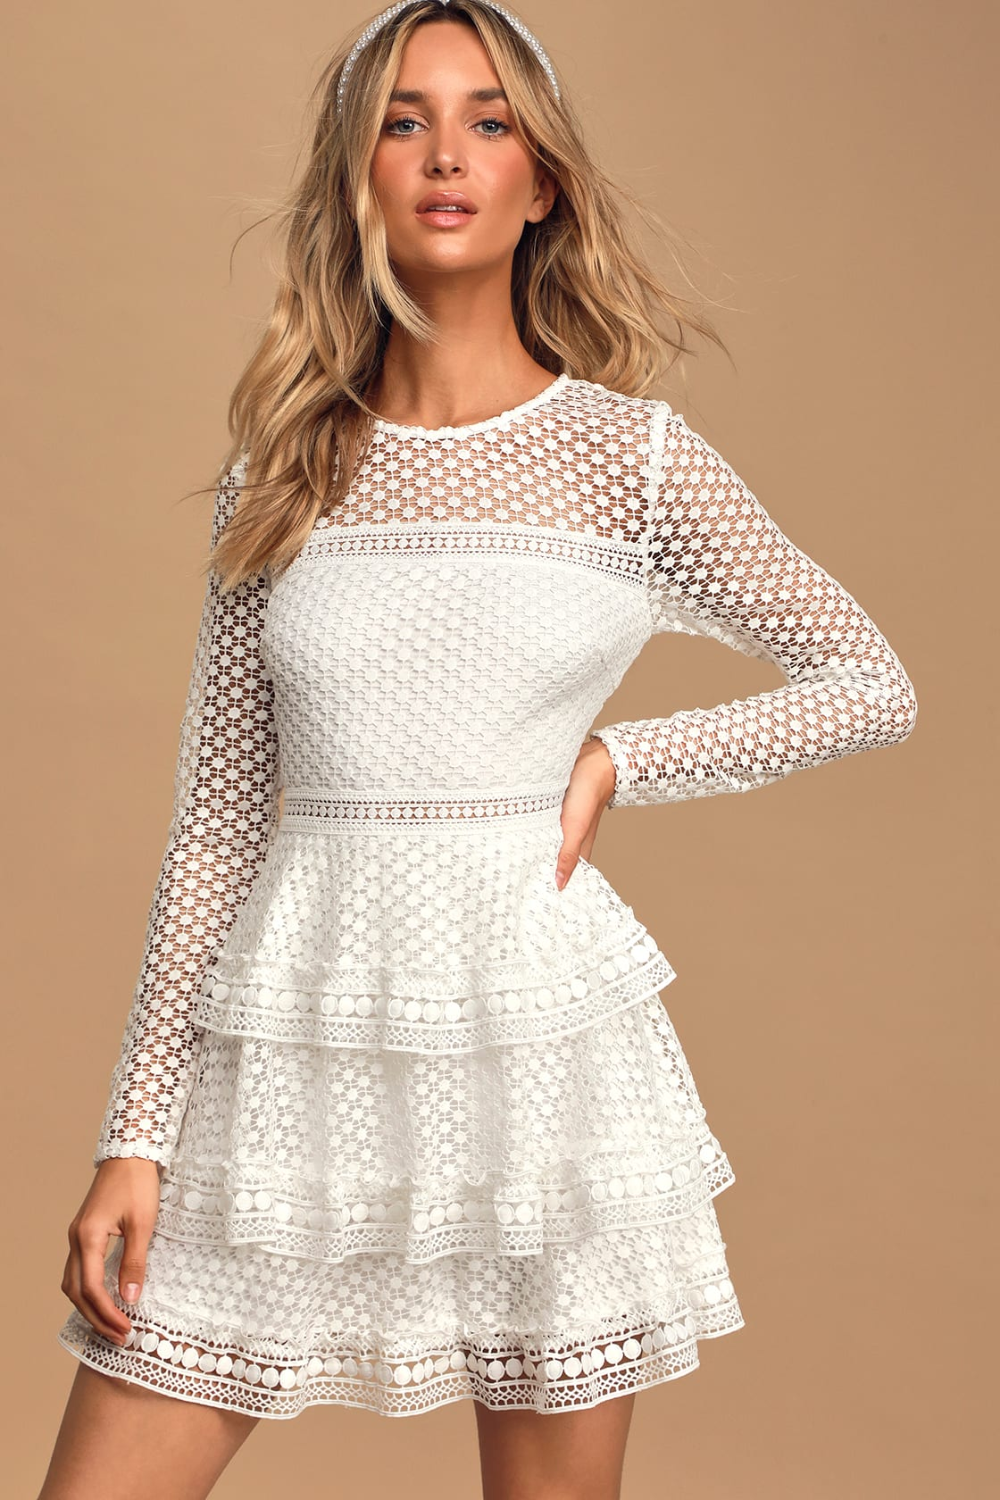 Begins With Love White Crochet Lace Tiered Mini Dress Mini Dress White Dresses For Women Mini Dress Formal [ 1500 x 1000 Pixel ]